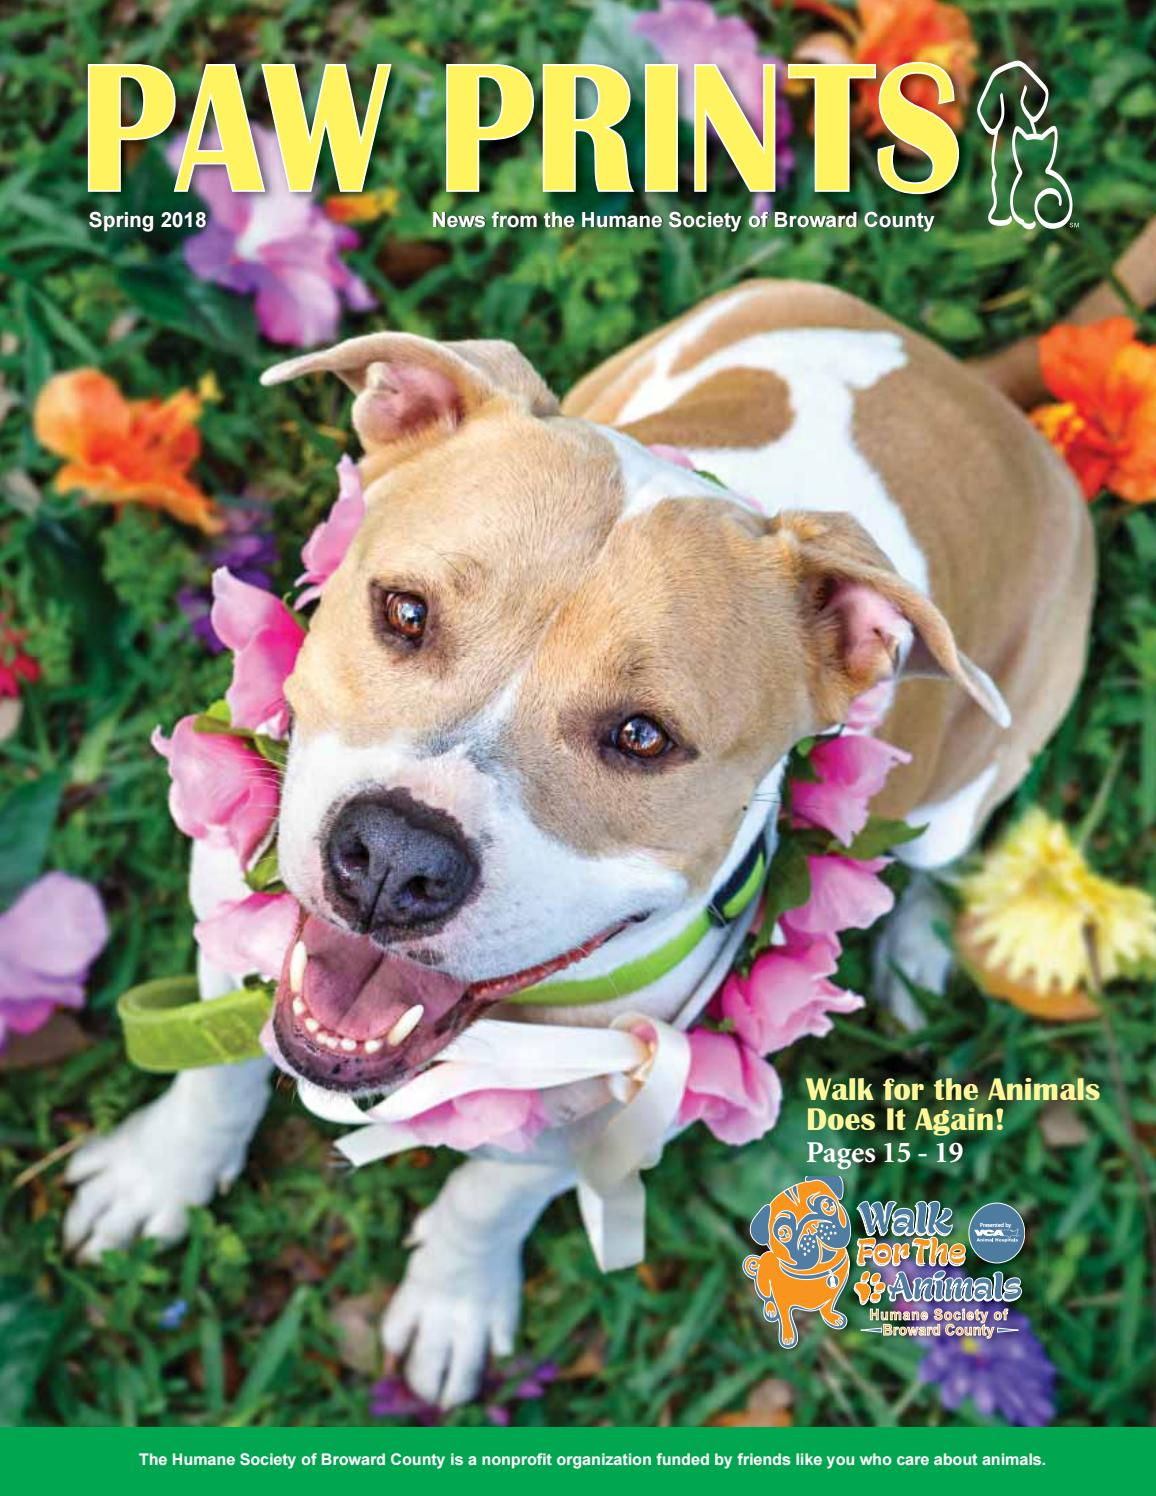 Paw Prints Spring 2018 by Humane Society of Broward County